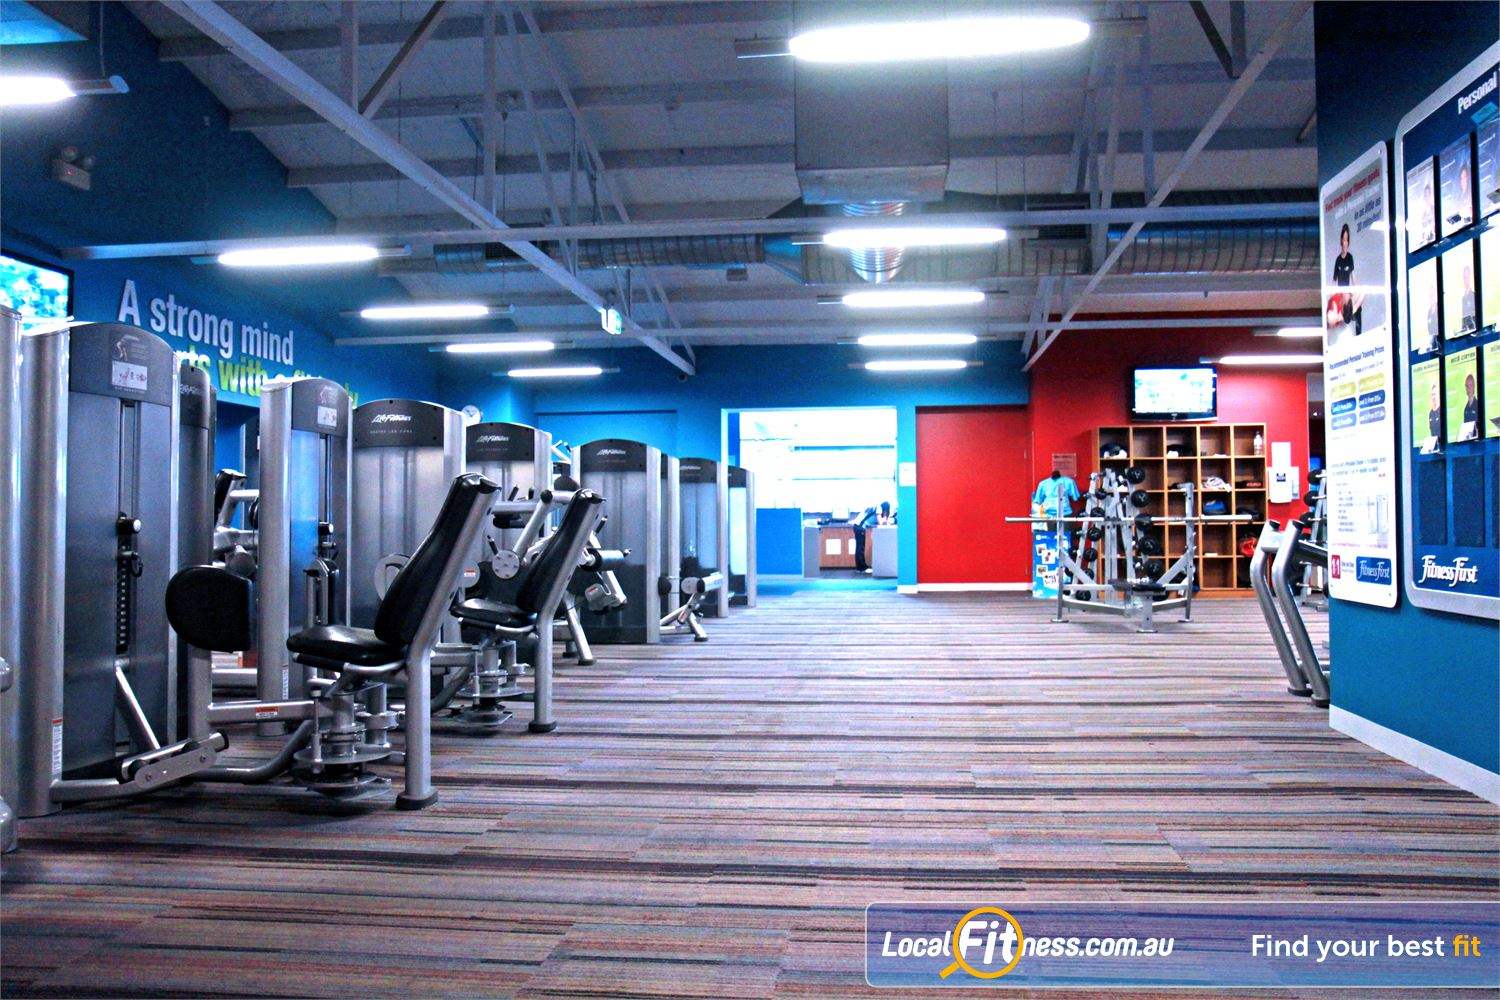 Goodlife Health Clubs Marion Welcome the spacious Goodlife Marion gym.